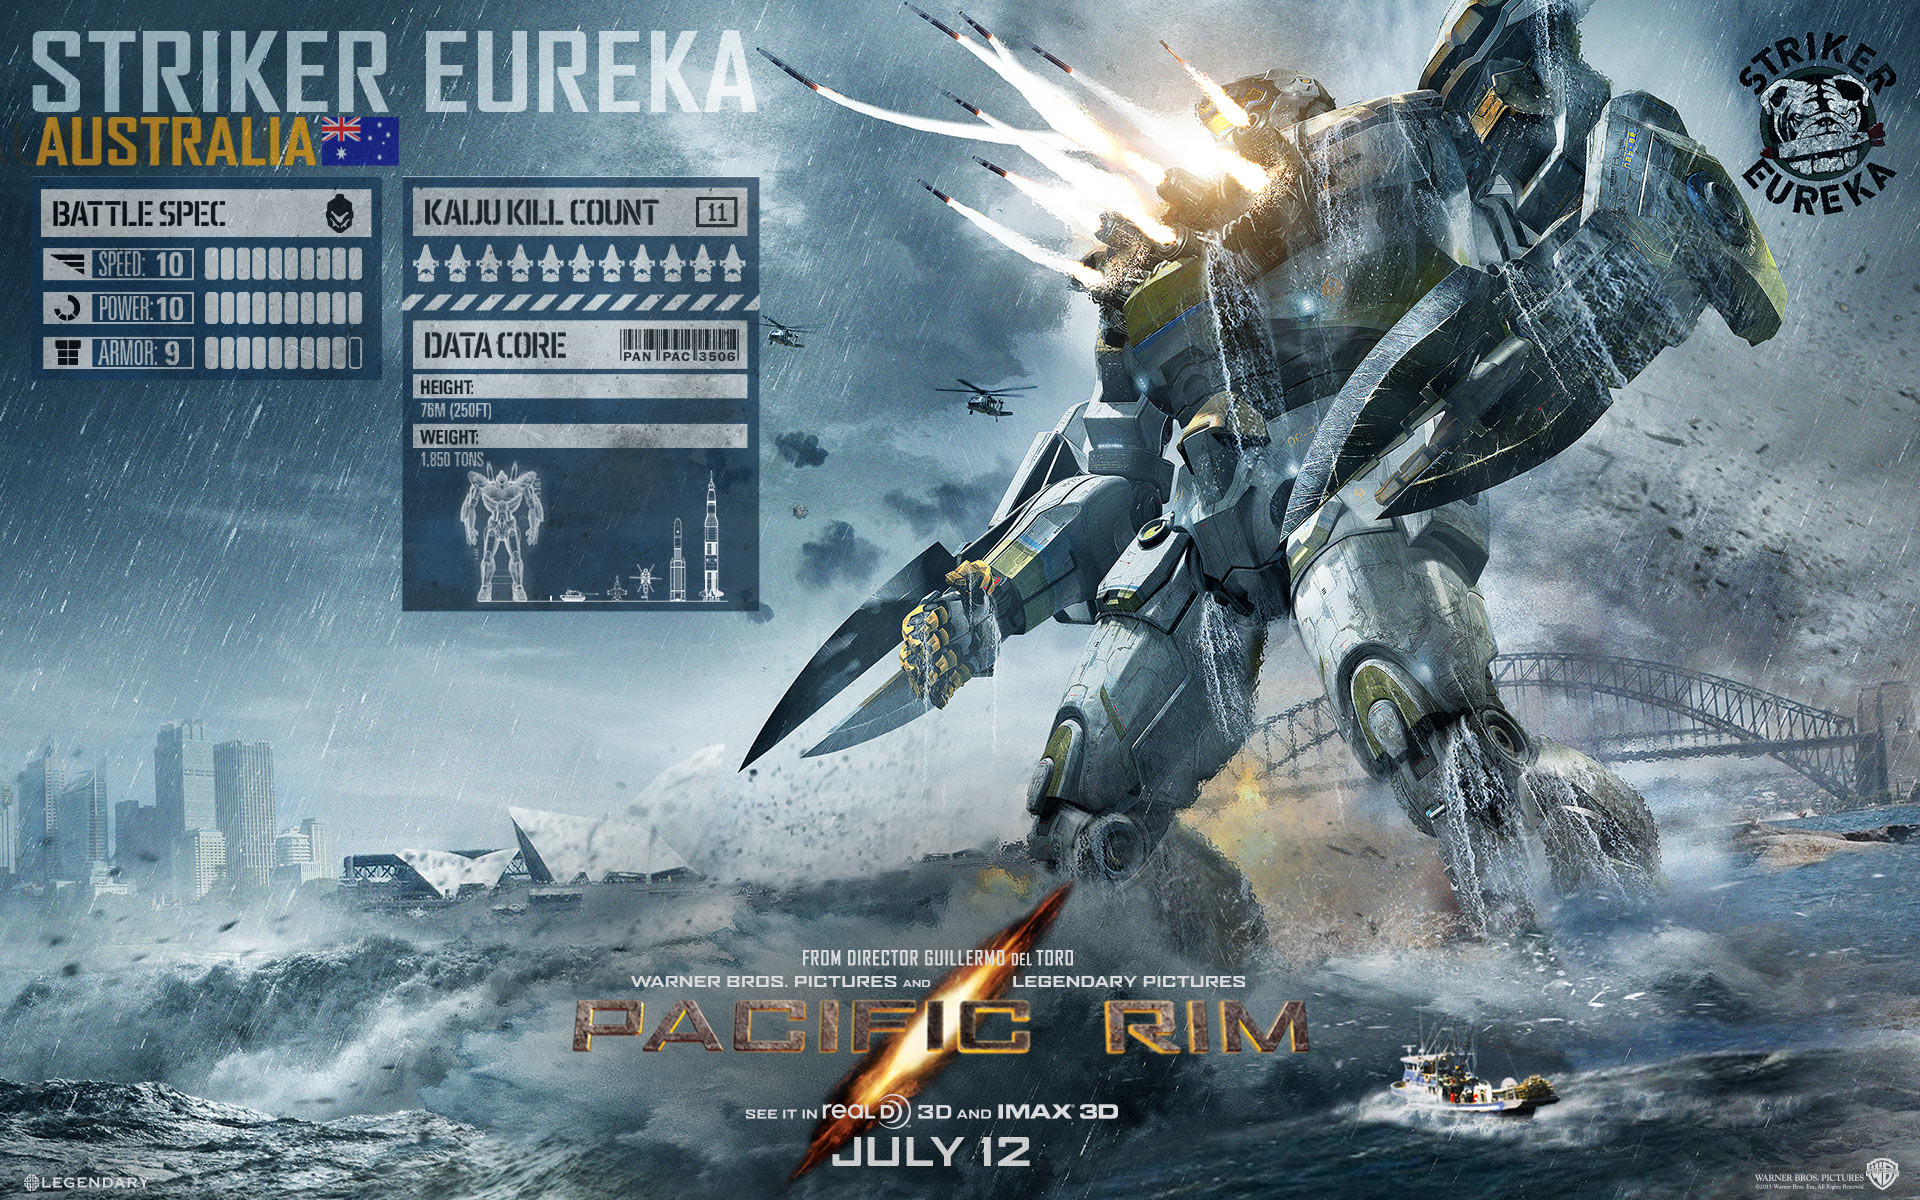 Pacific Rim Images Striker Eureka HD Wallpaper And Background Photos